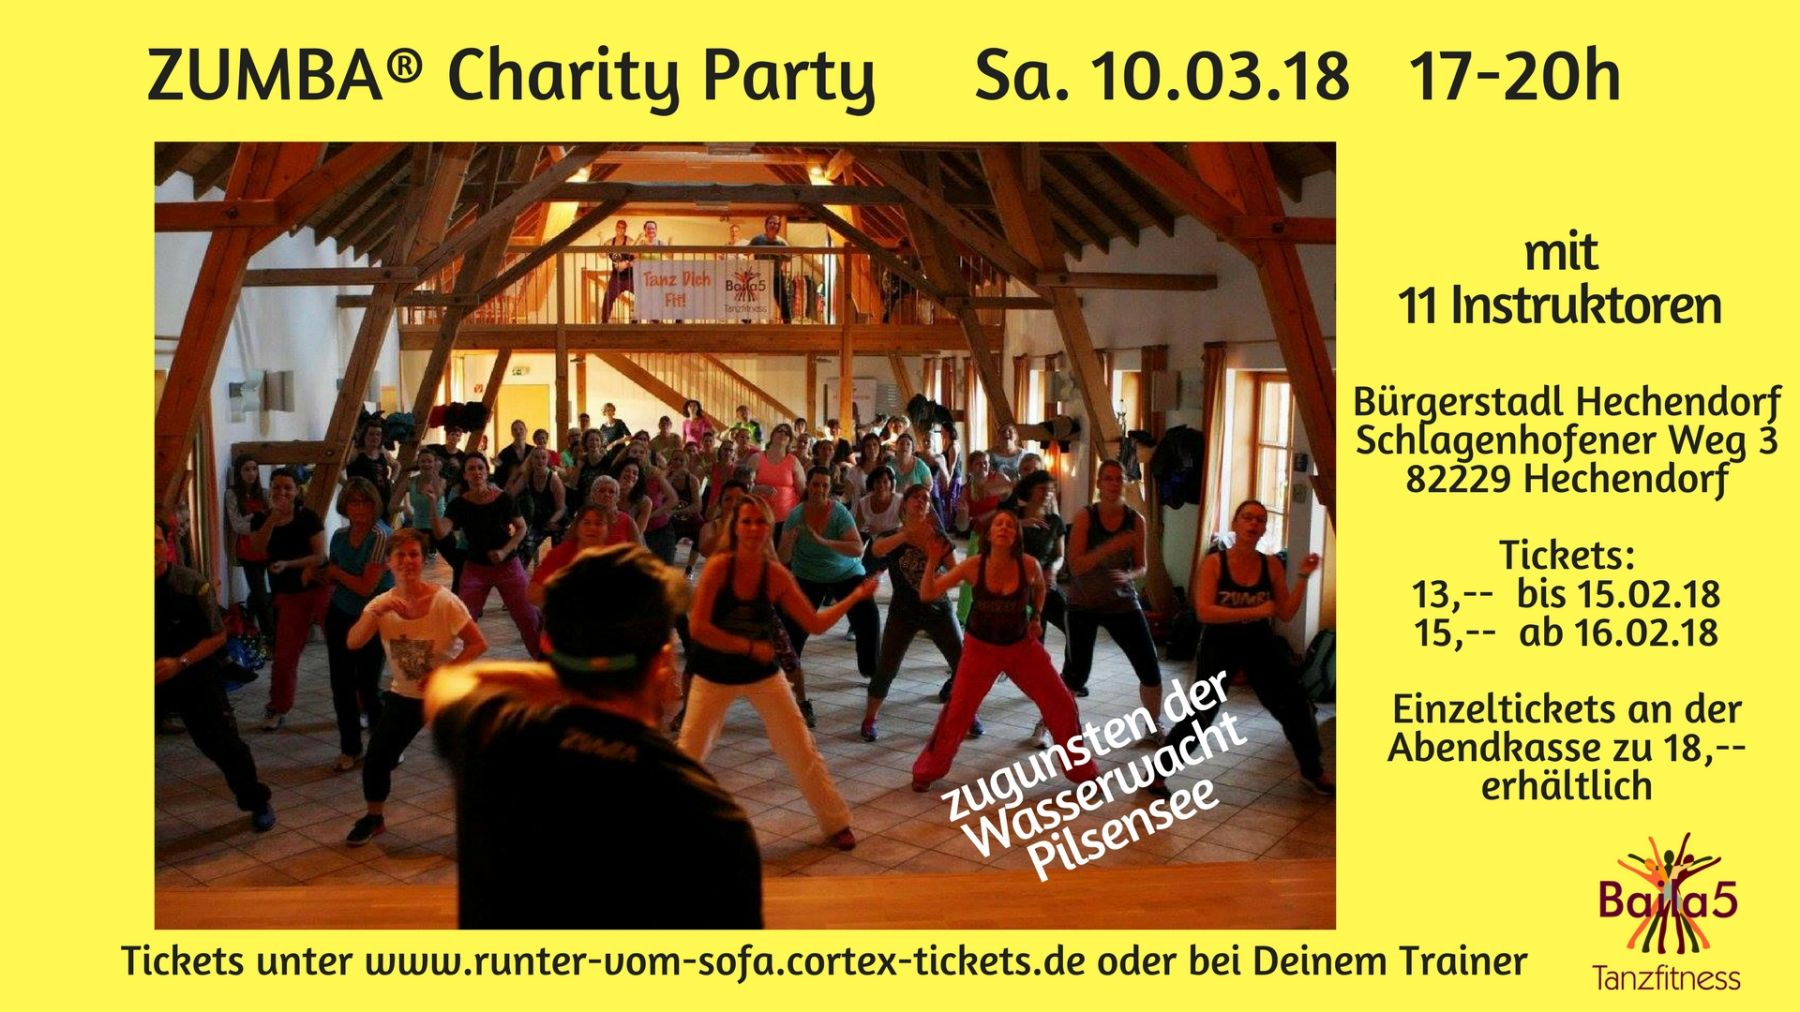 tickets f r zumba charity party am kaufen. Black Bedroom Furniture Sets. Home Design Ideas